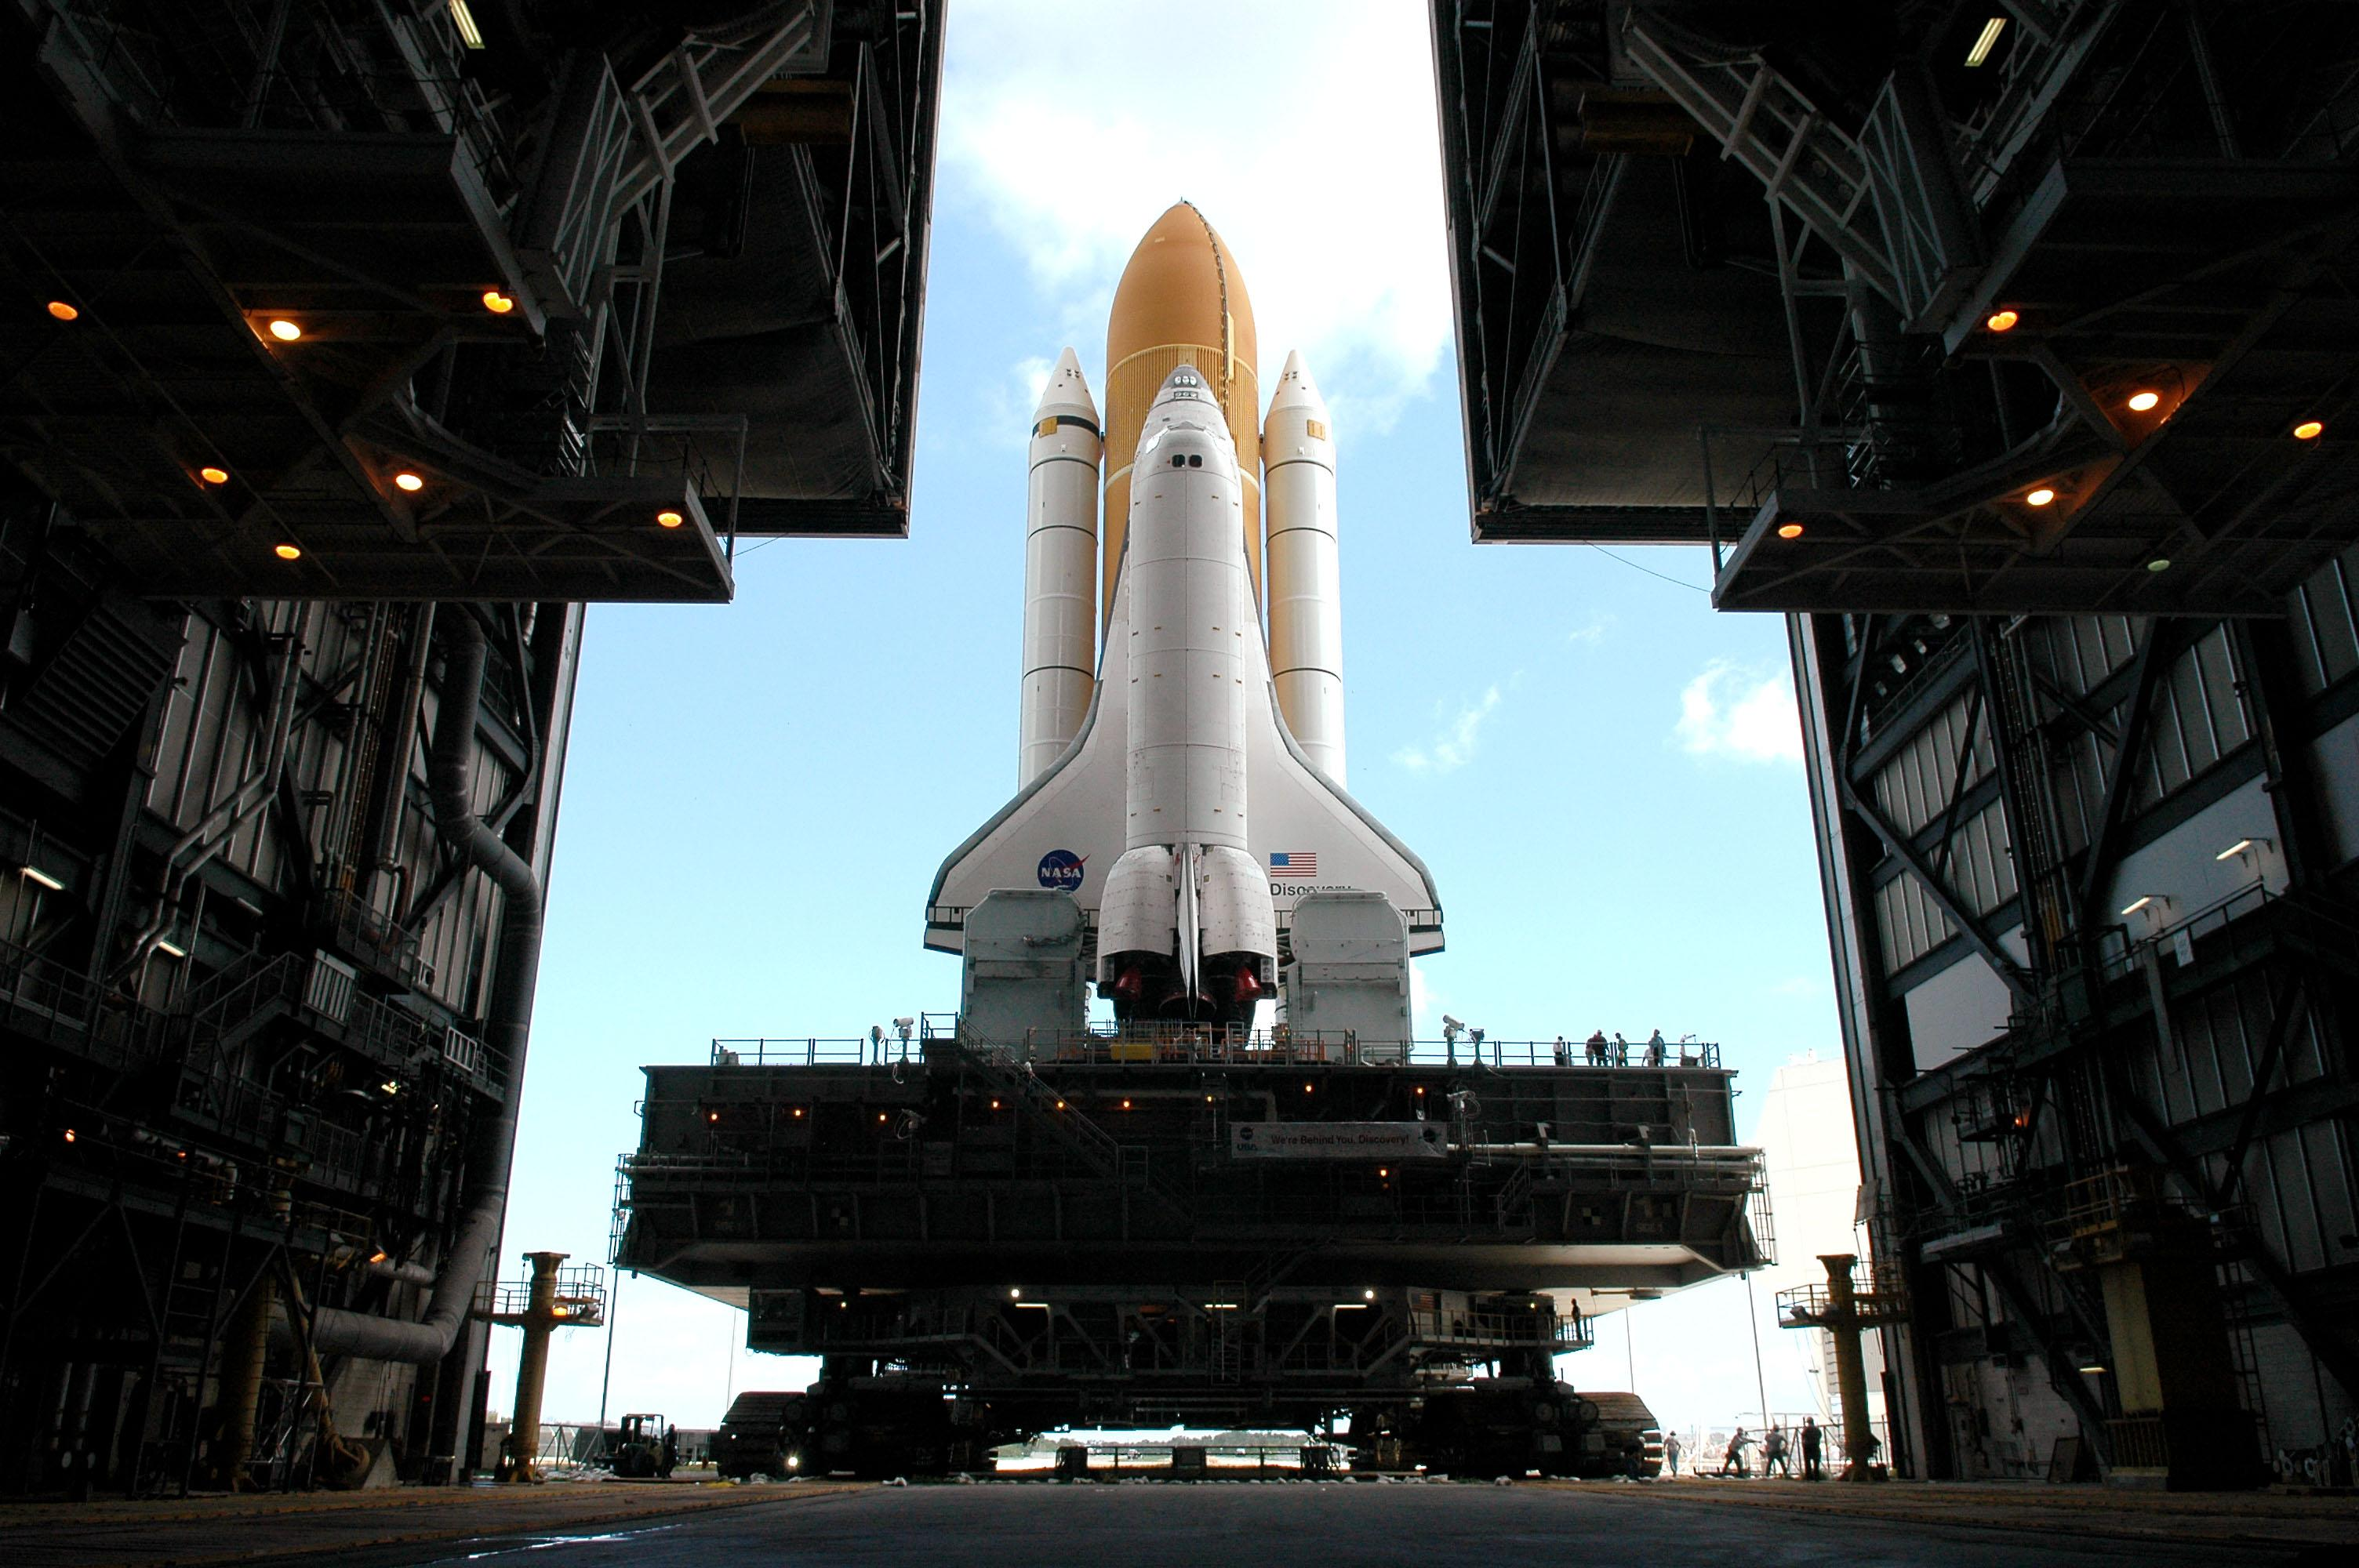 Space Shuttle Before Launch Wallpaper 3008x2000 ID50066 3008x2000